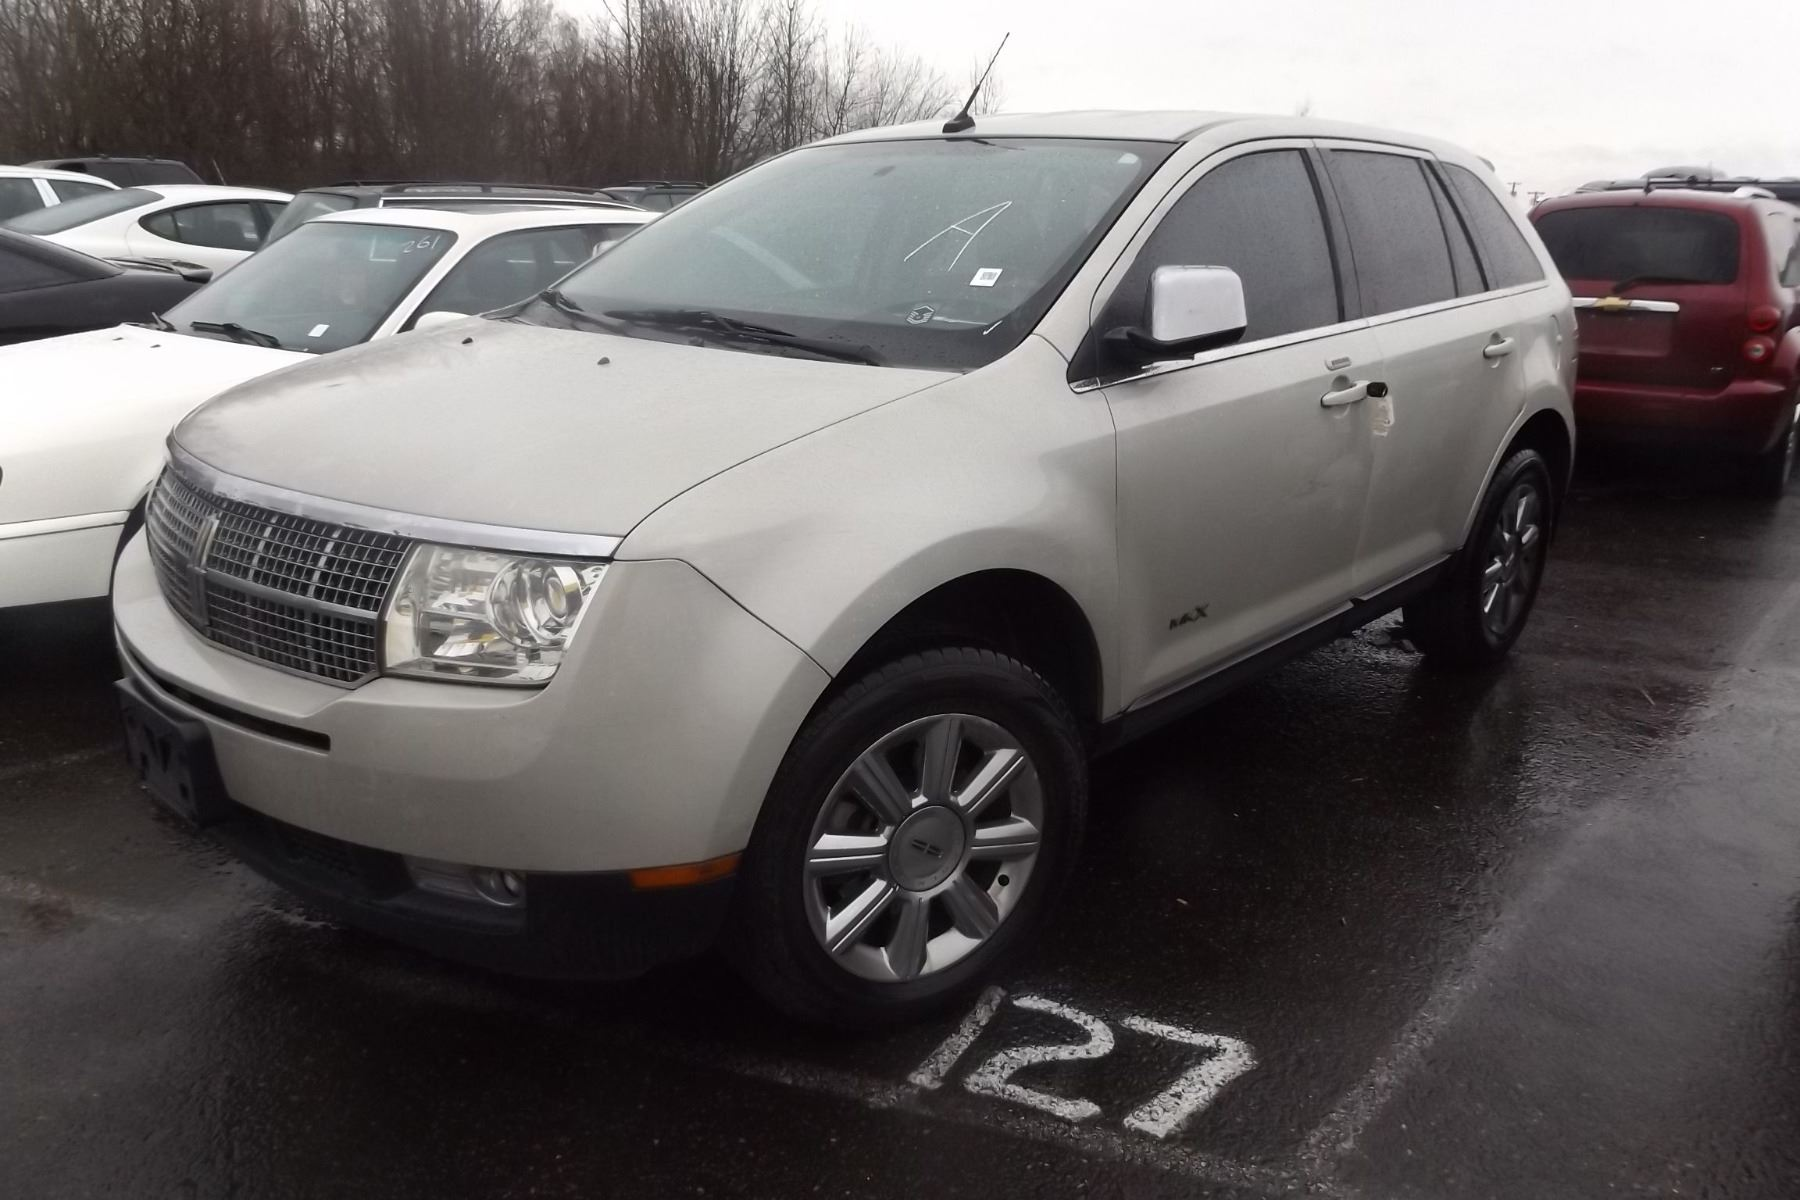 2007 lincoln mkx speeds auto auctions rh auctions speedstowingauction com 2007 Lincoln MKX Recalls 2007 Lincoln MKX Problems